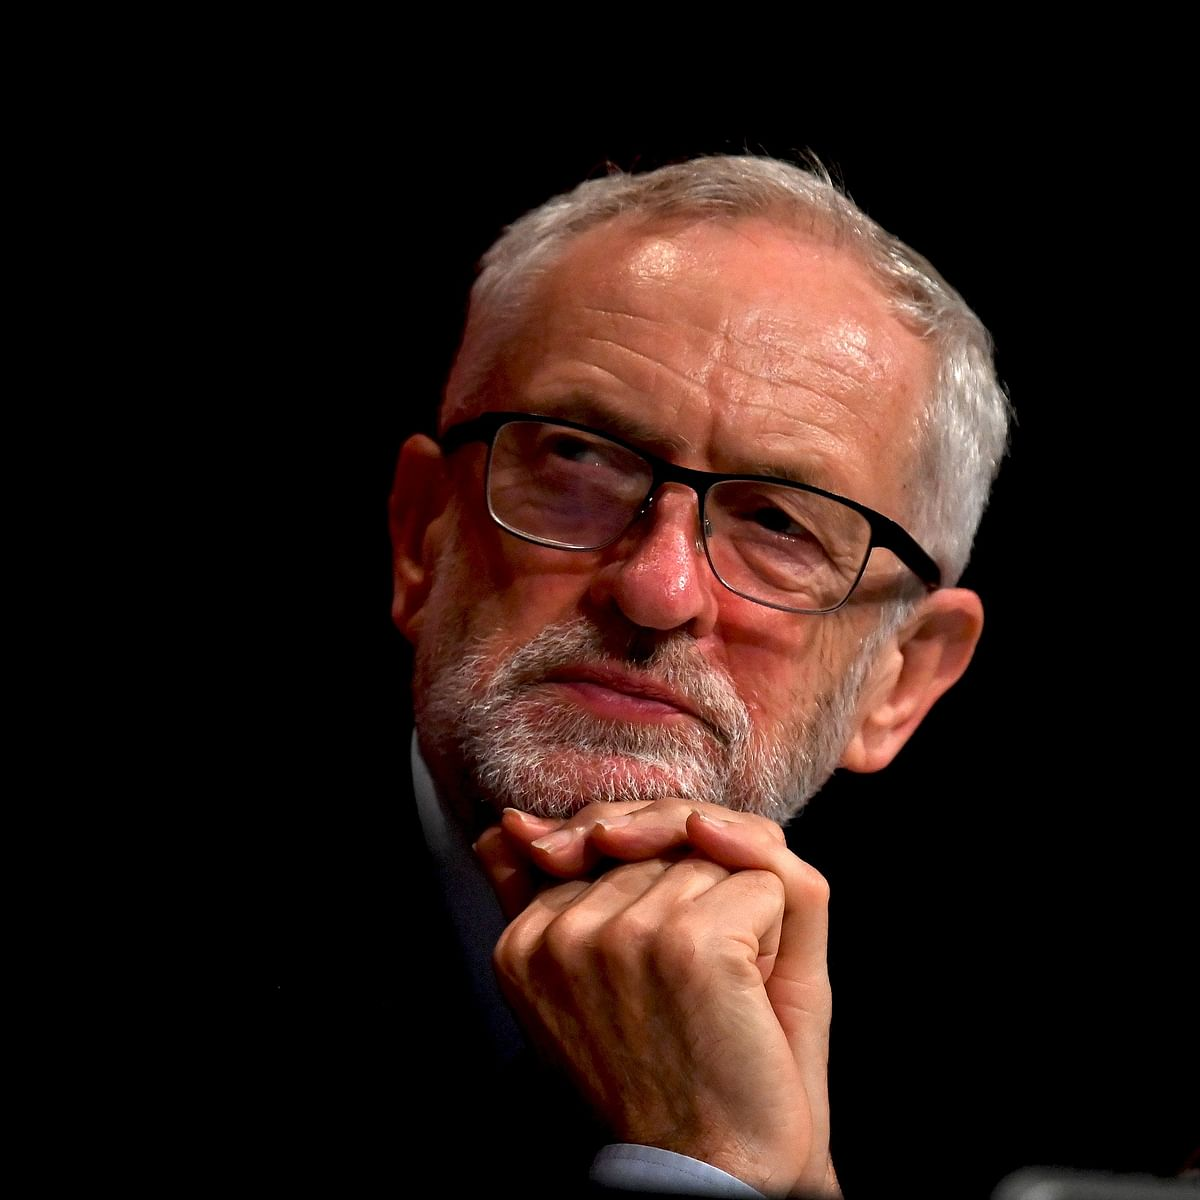 UK's Jeremy Corbyn says will not lead Labour at next election